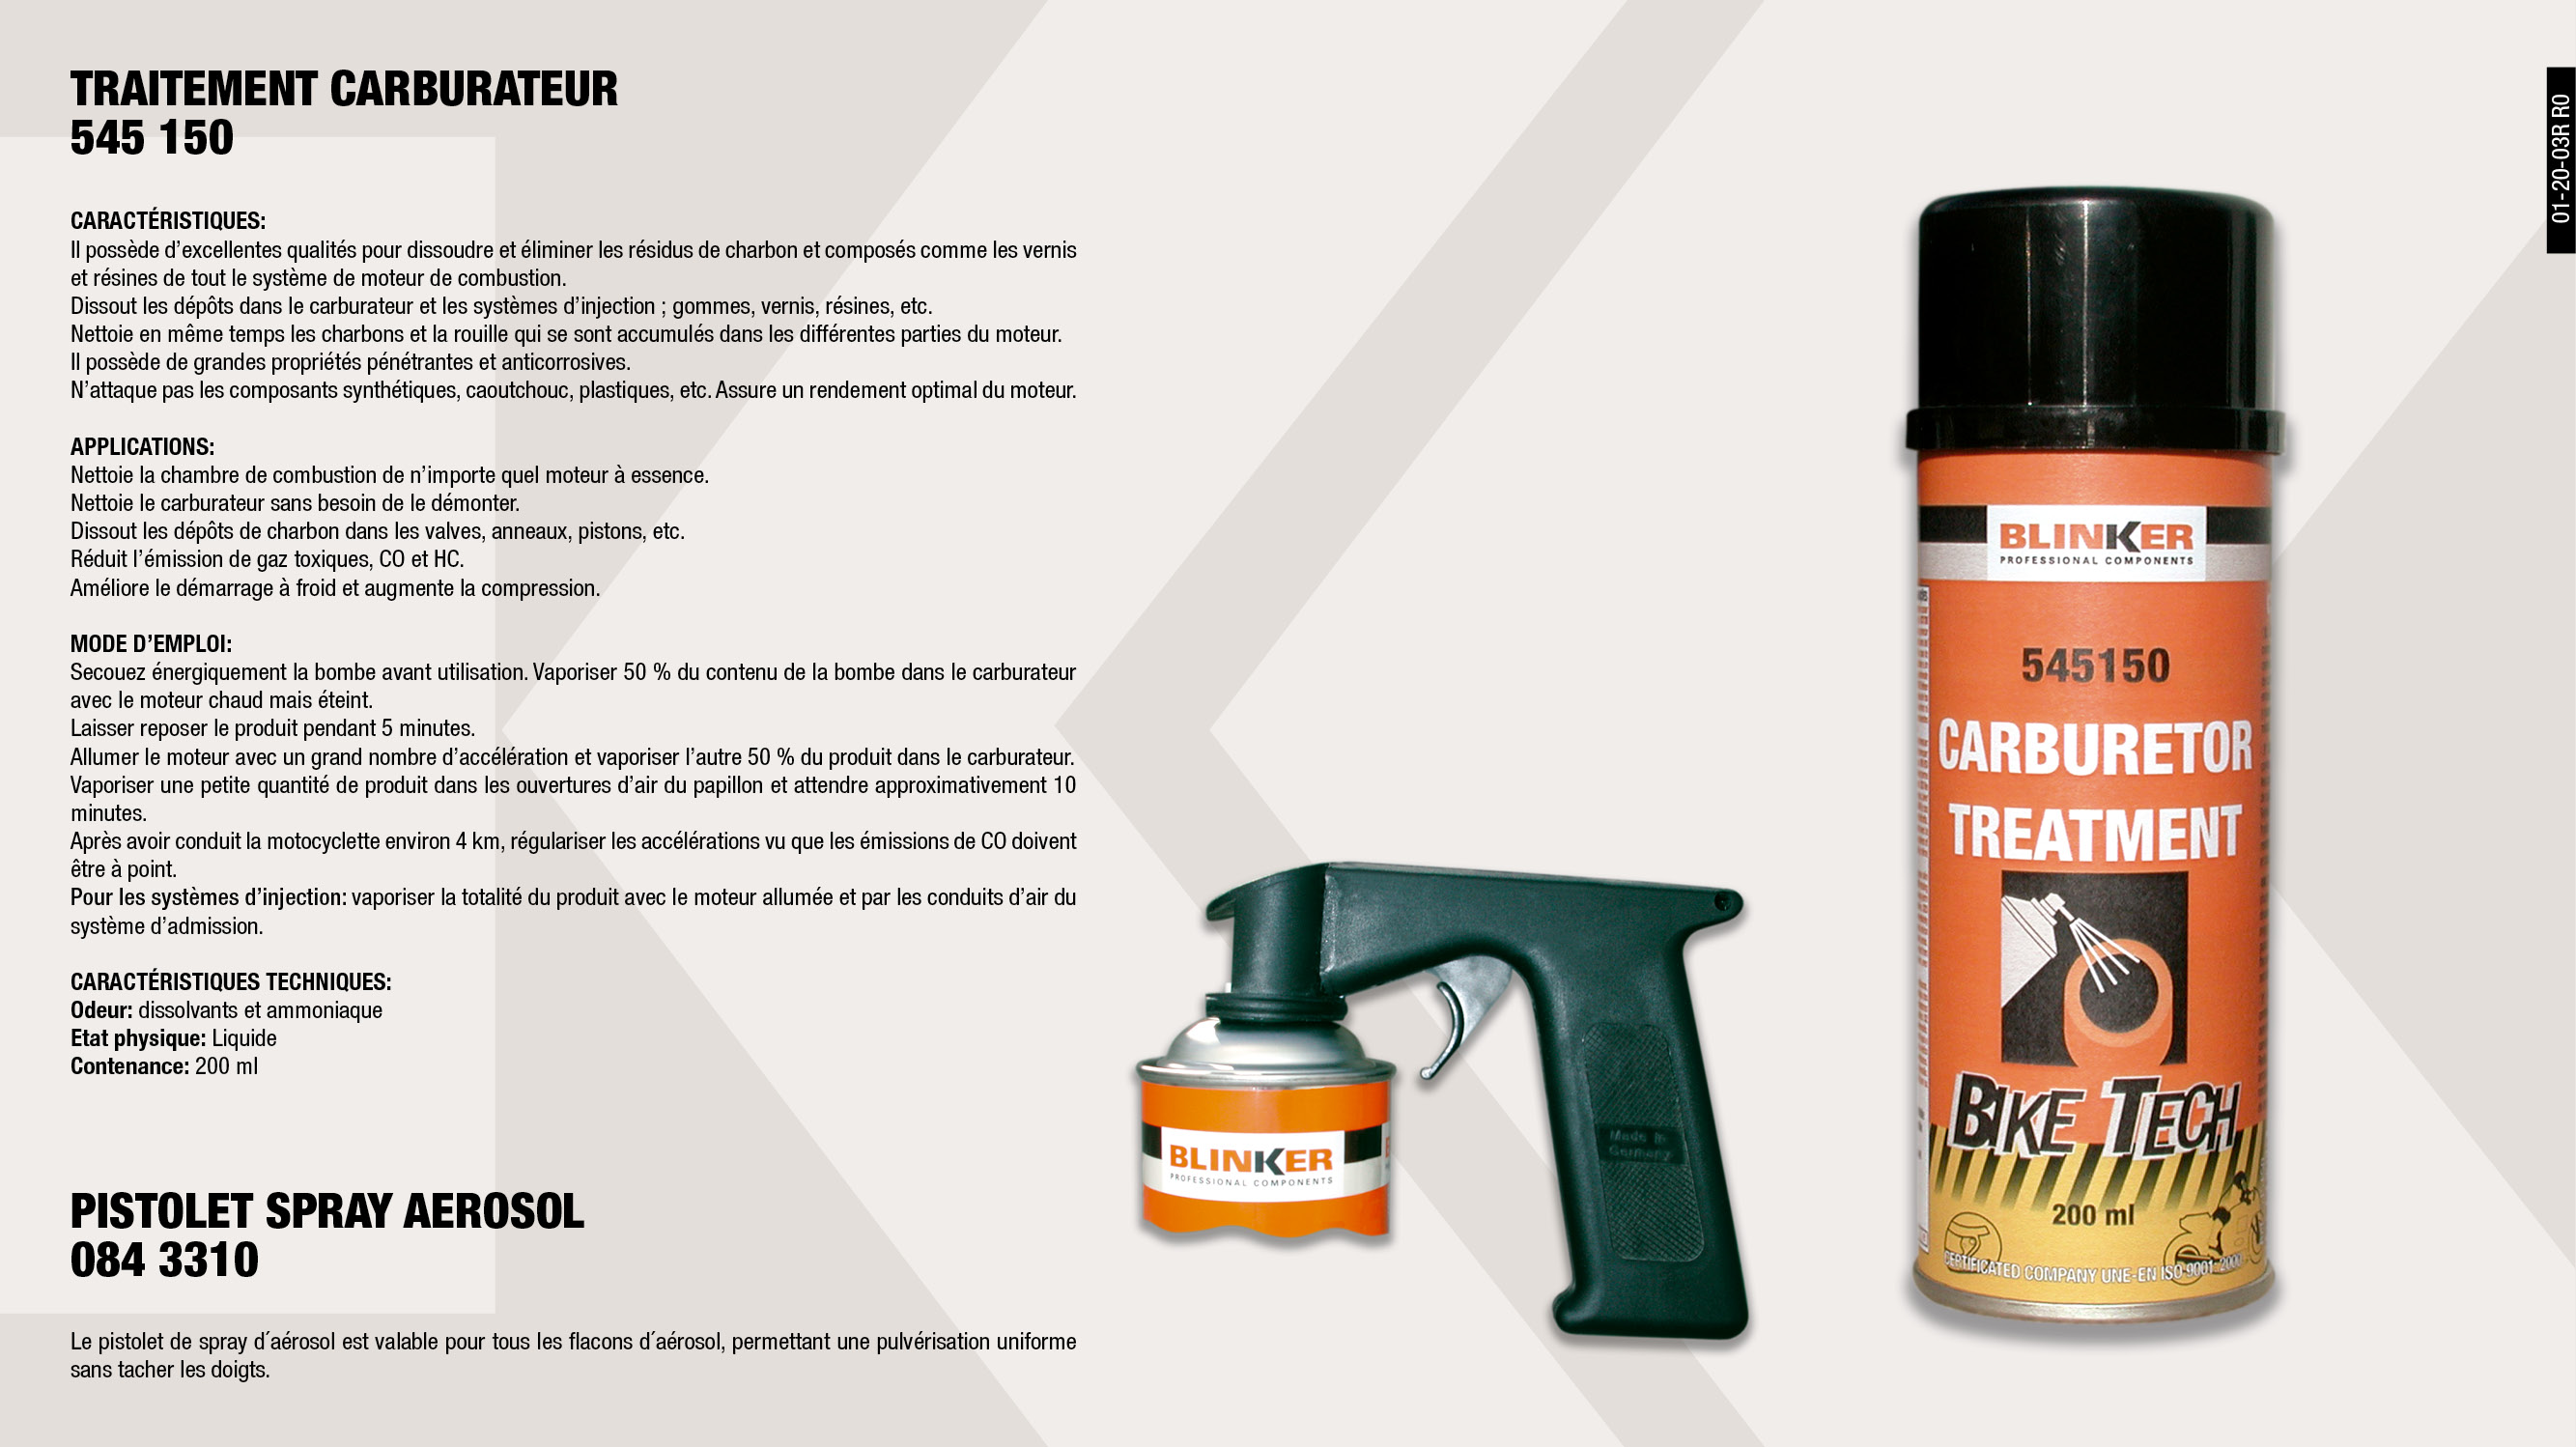 PISTOLET SPRAY AEROSOL                                      ,  									TRAITEMENT CARBURATEUR 200ML (BIKE TECH)                    ,